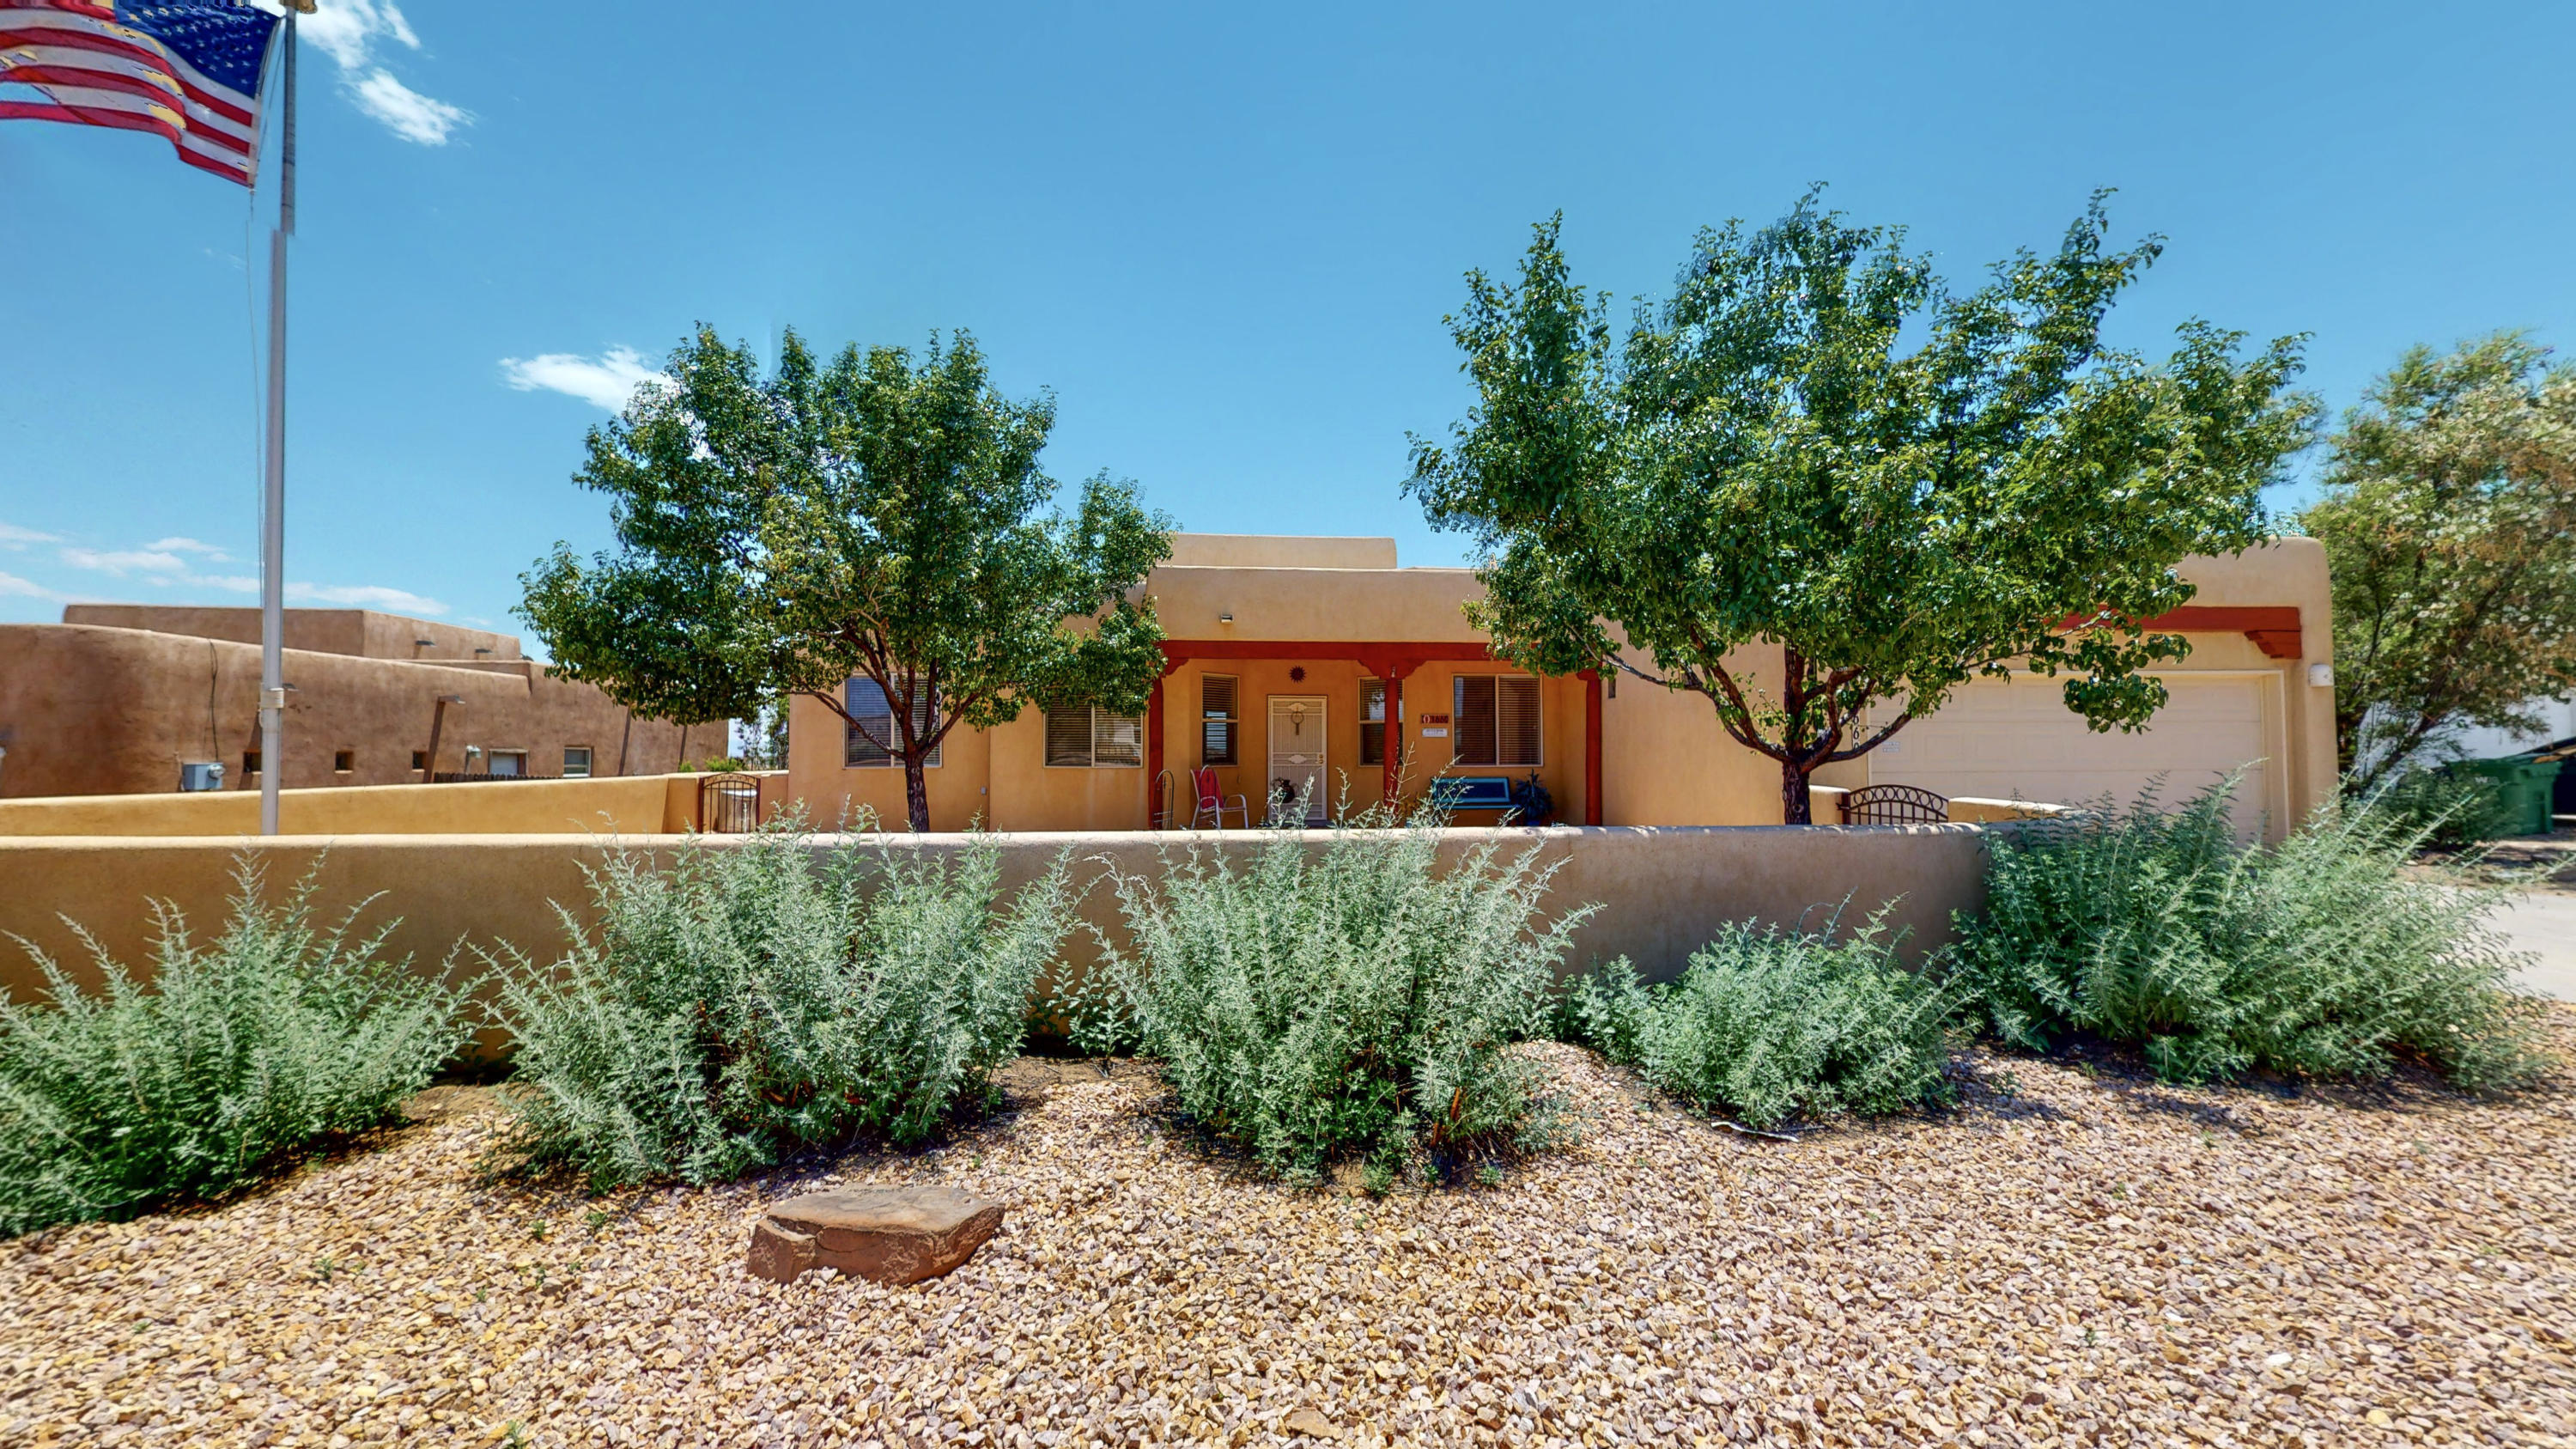 Gorgeous single story custom home sitting on .50 acres in Rio Rancho with mountain views! Open living/kitchen area with gas kiva fireplace, vaulted ceilings with vigas, lighted nichos, beautiful wood laminate flooring, ceiling fans, and skylights. Large kitchen with tons of storage, walk-in pantry, bar seating. Formal dining room, and bonus room/ office space! Master suite with his/her sinks, Jacuzzi tub, and separate shower and walk-in closet. Refrigerated air! Walled backyard with large covered patio to soak in the views! close to shopping, dining, and Rust medical center! Schedule a private showing or take a virtual walkthrough tour today!